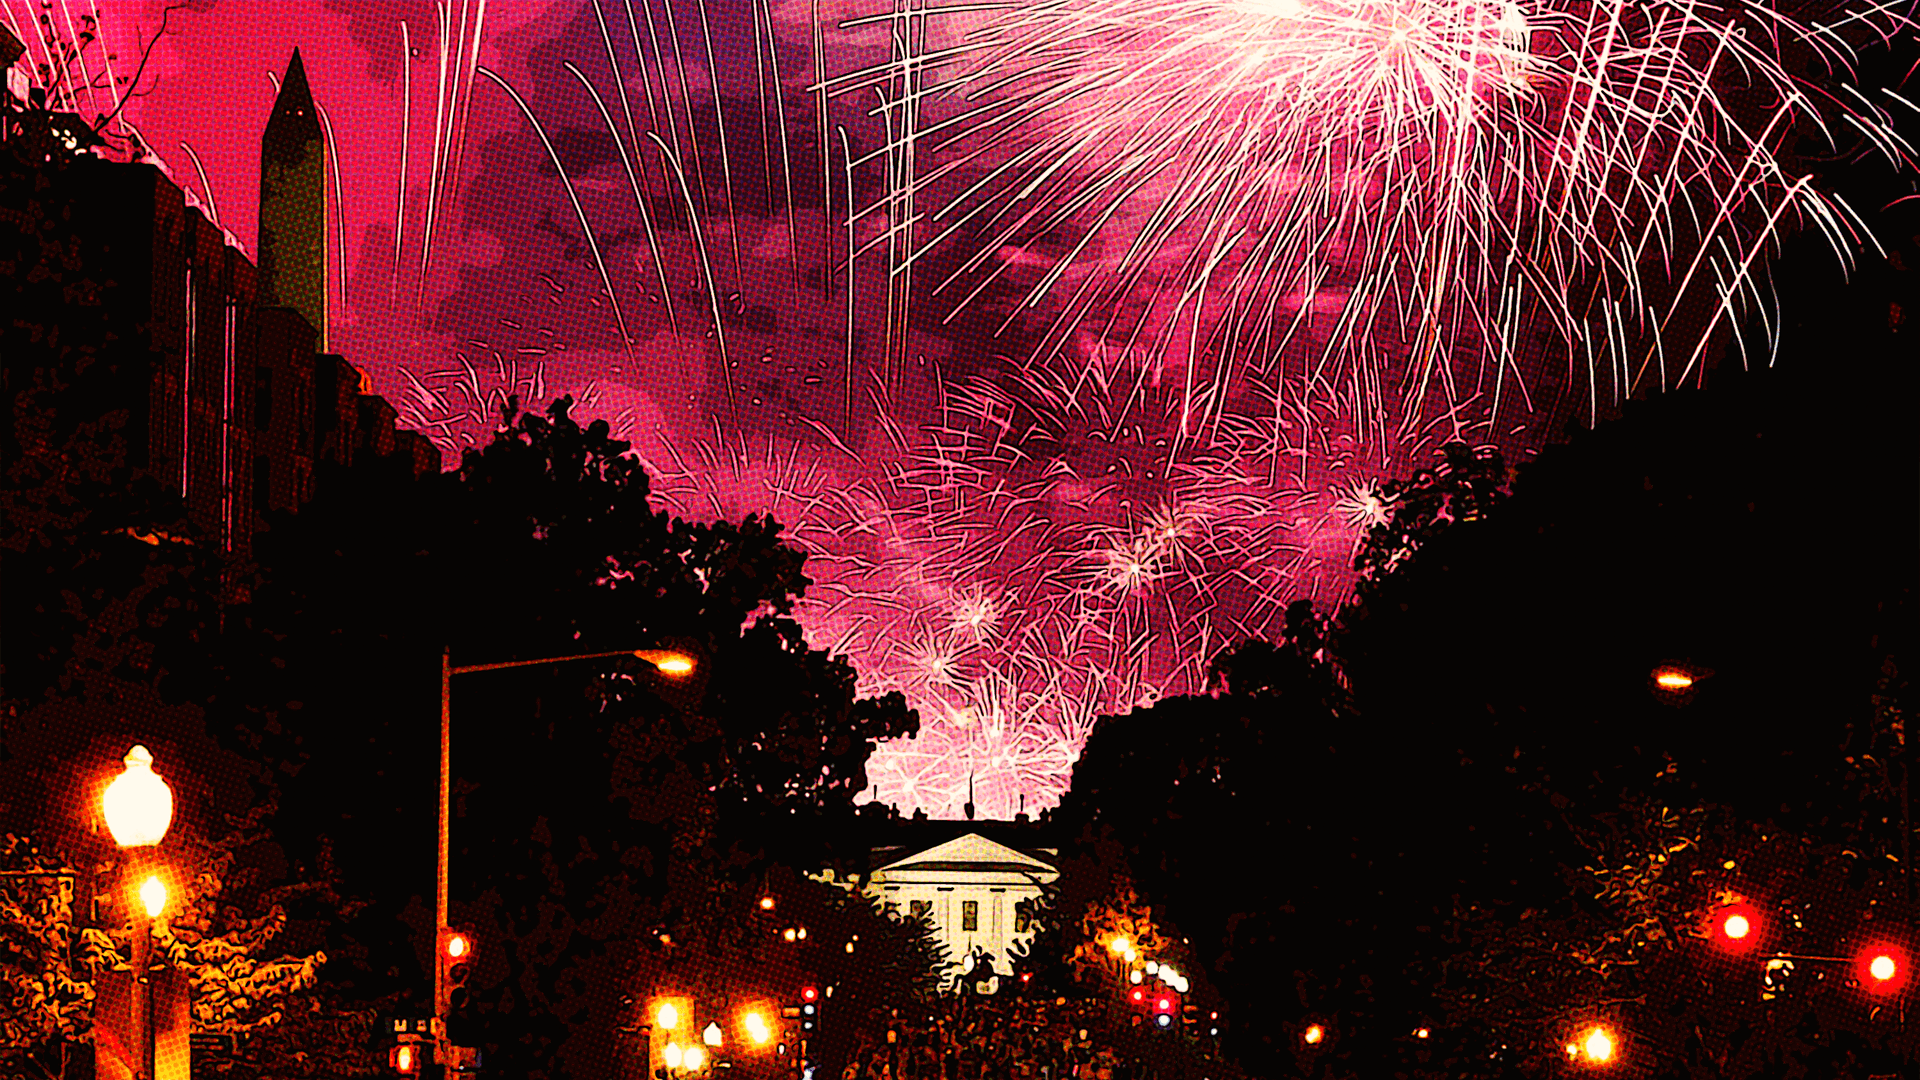 Fireworks at the Republican National Convention 2020 in Washington D.C.